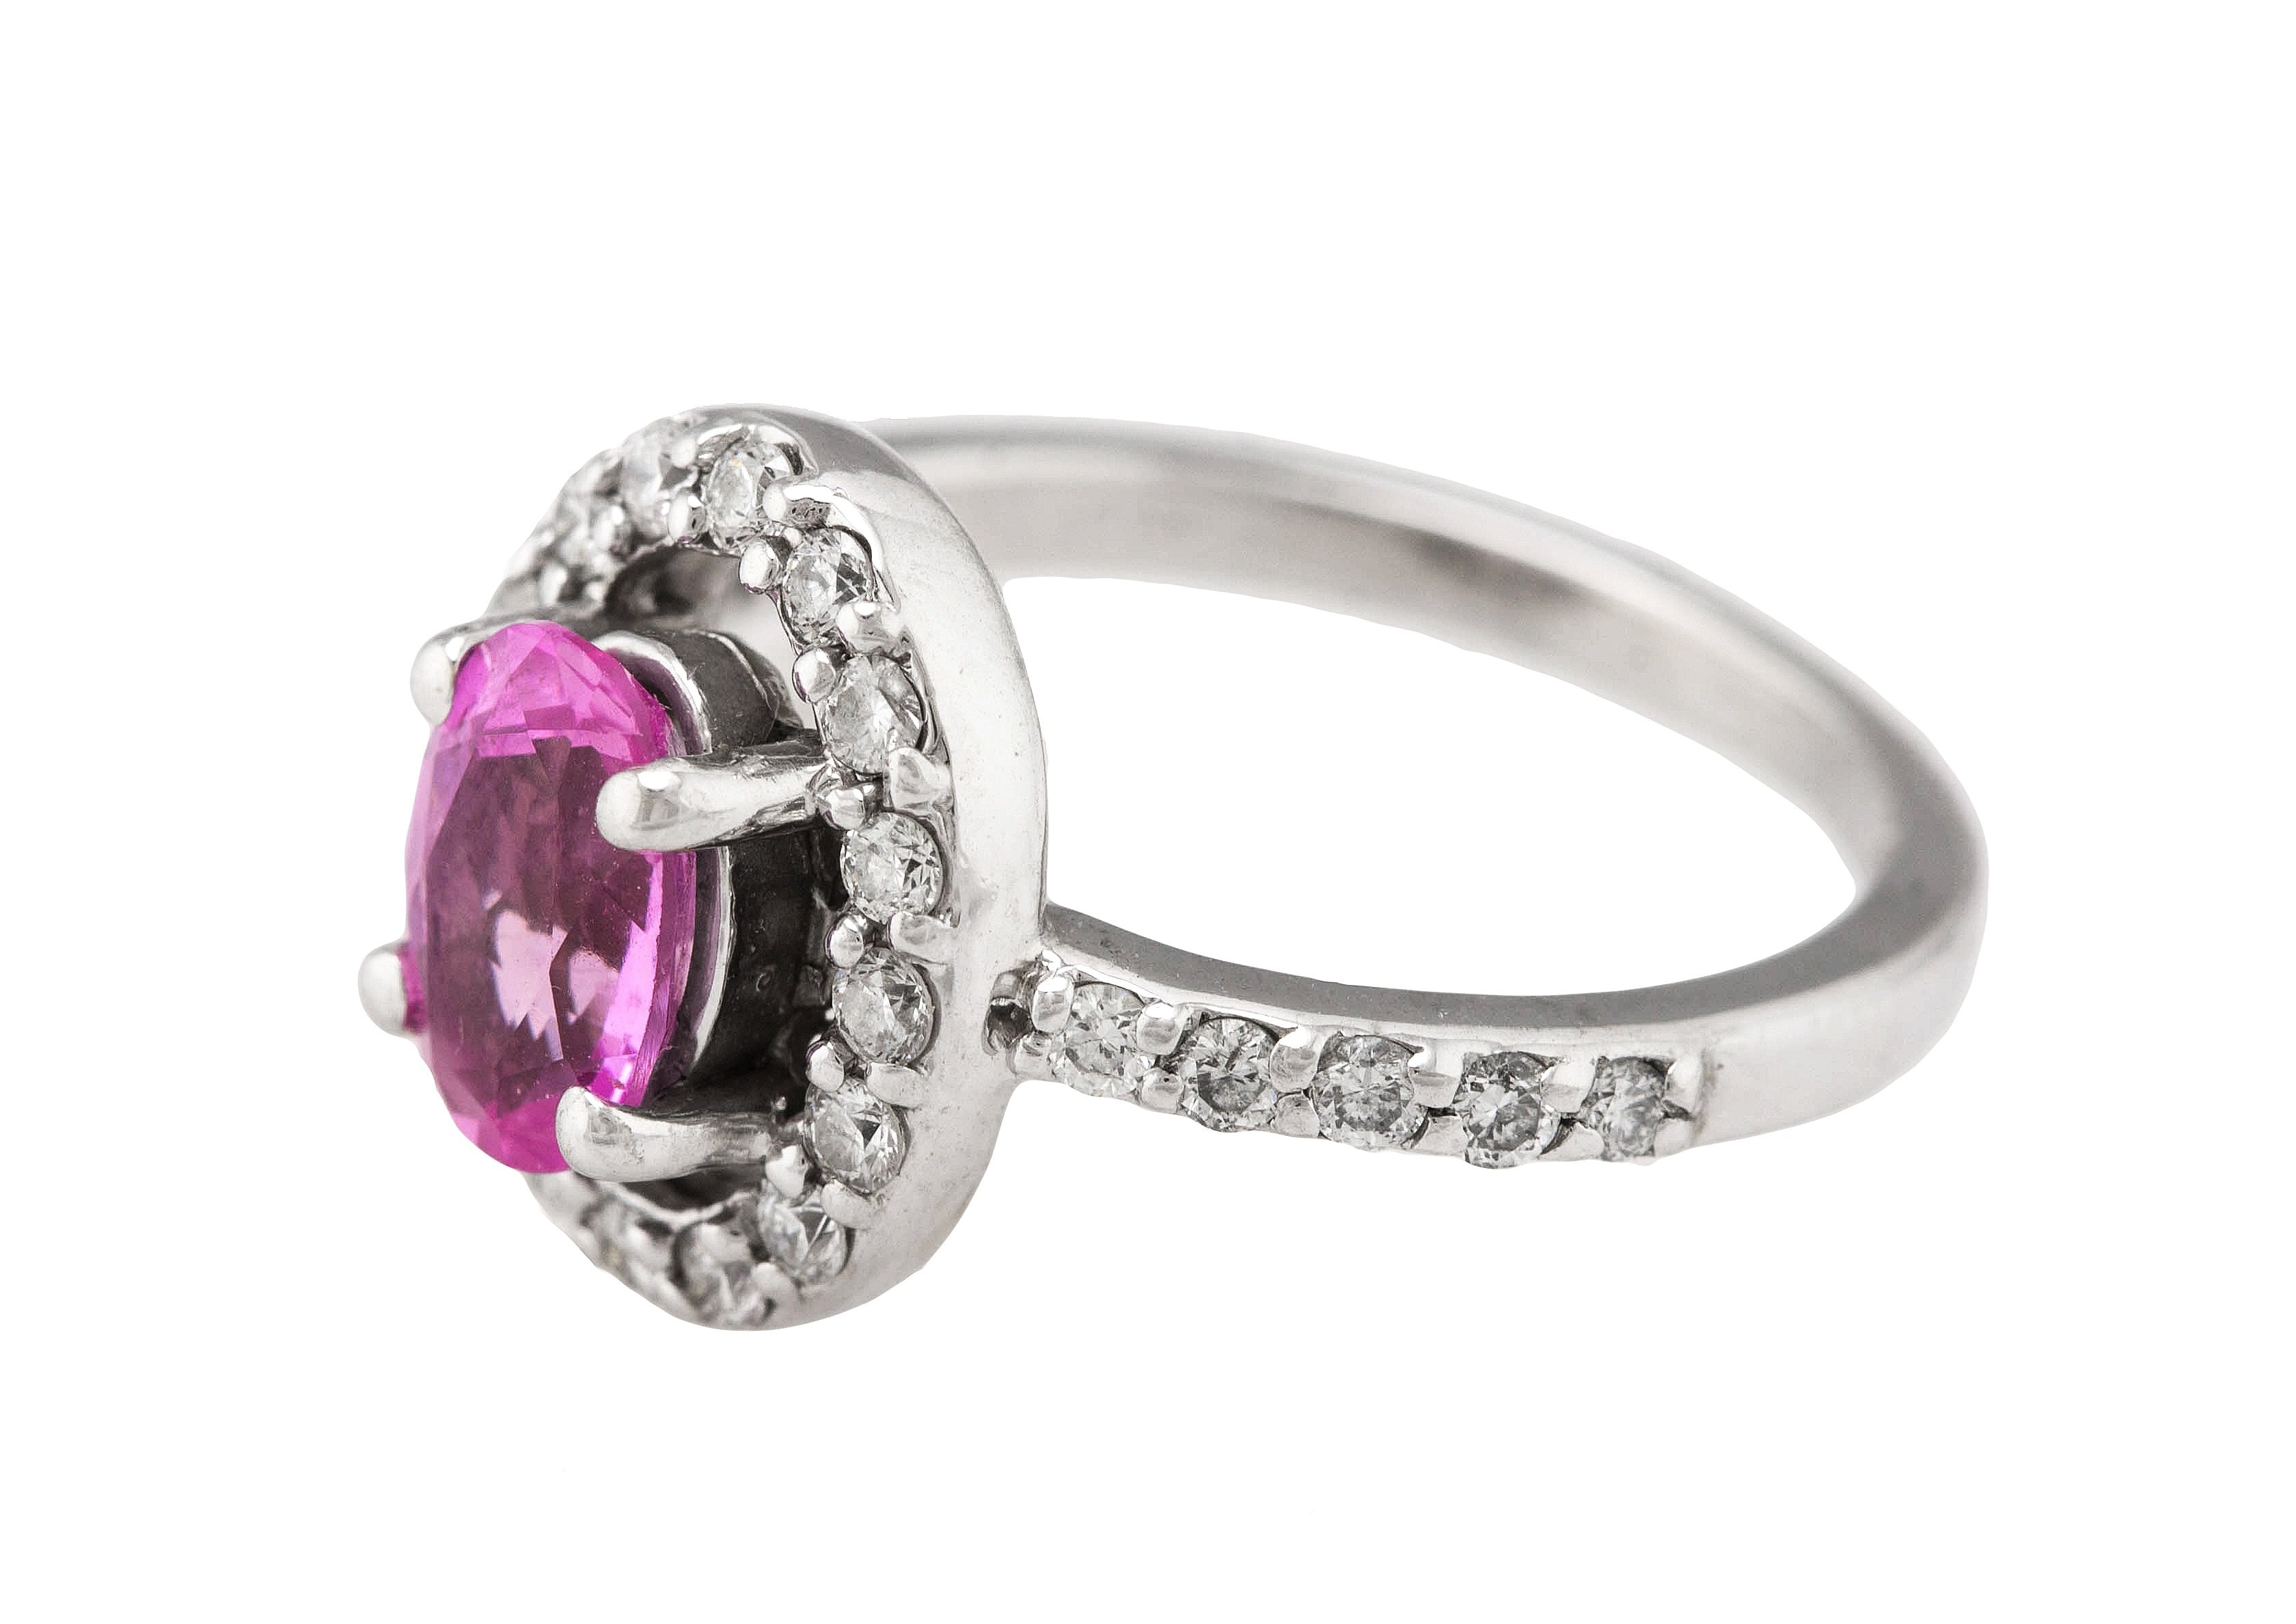 Lovely Ladies 14K White Gold 0.65ctw Pink Sapphire Diamond Halo Anniversary Ring